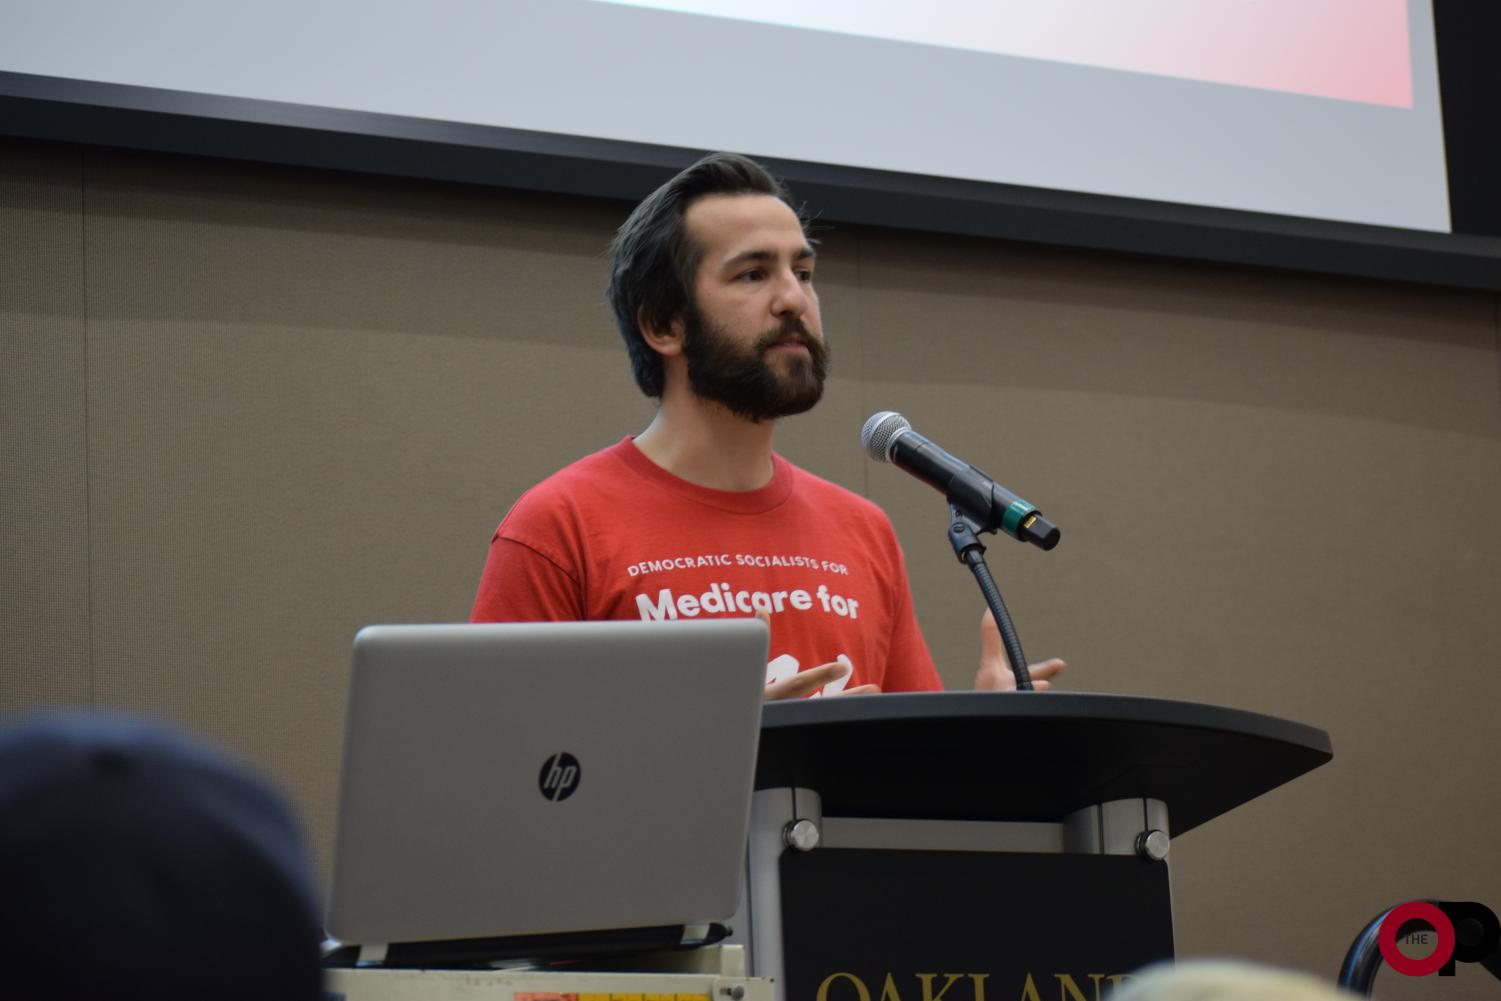 The Young Democratic Socialists of America of Oakland University (YDSA) hosts a town hall event to support Medicare for All on Wednesday, Nov. 6.